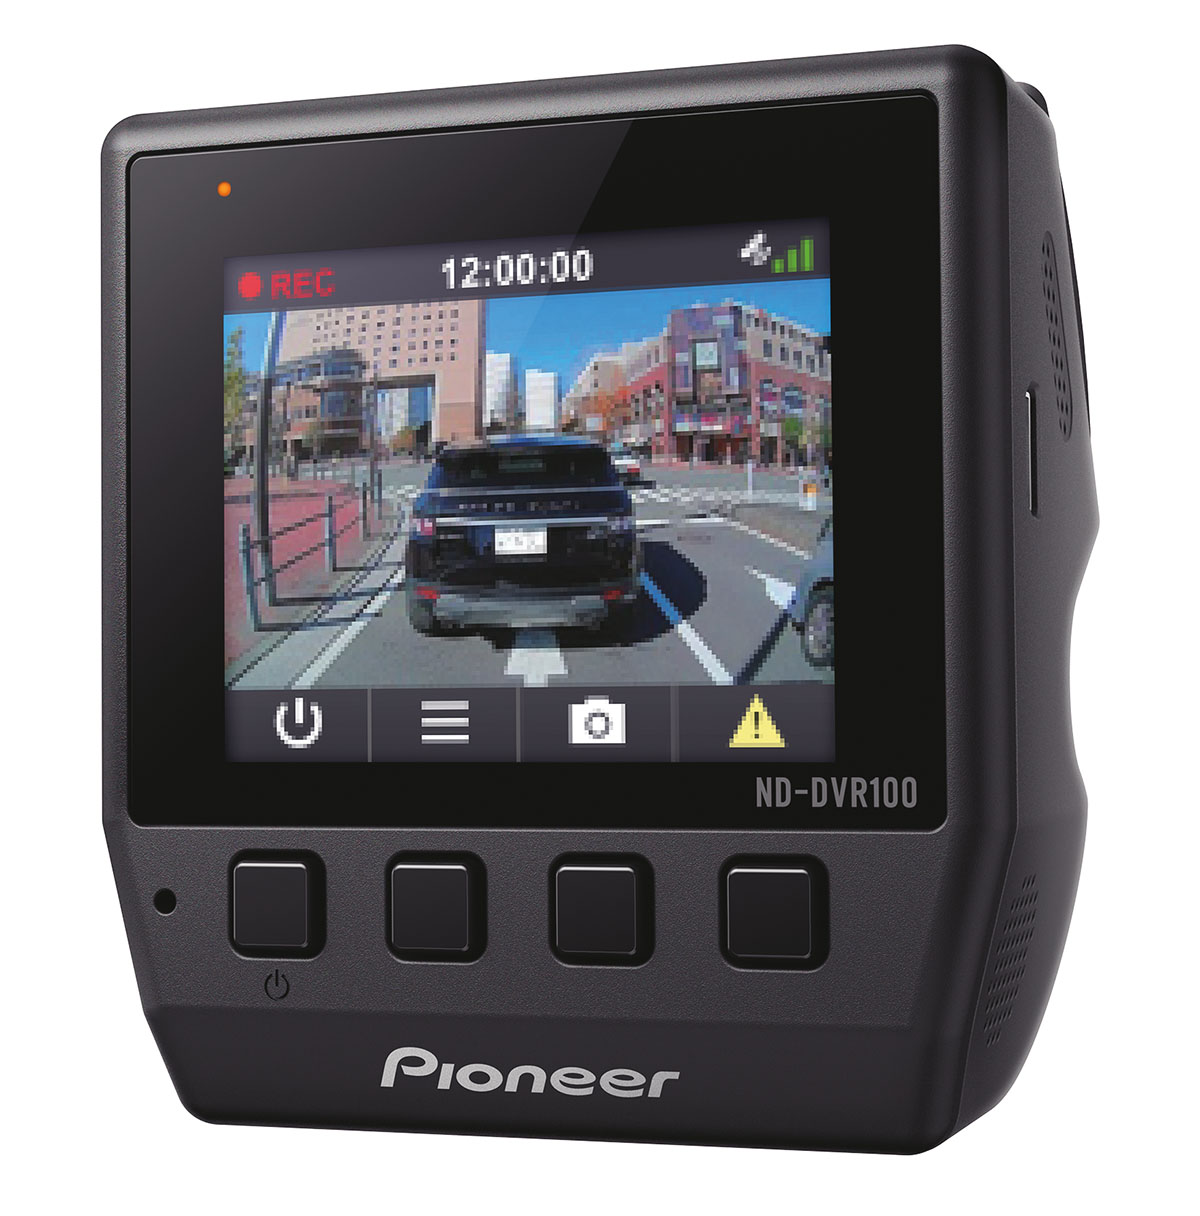 Pioneer ND-DVR100 Dash Camera- Rear View